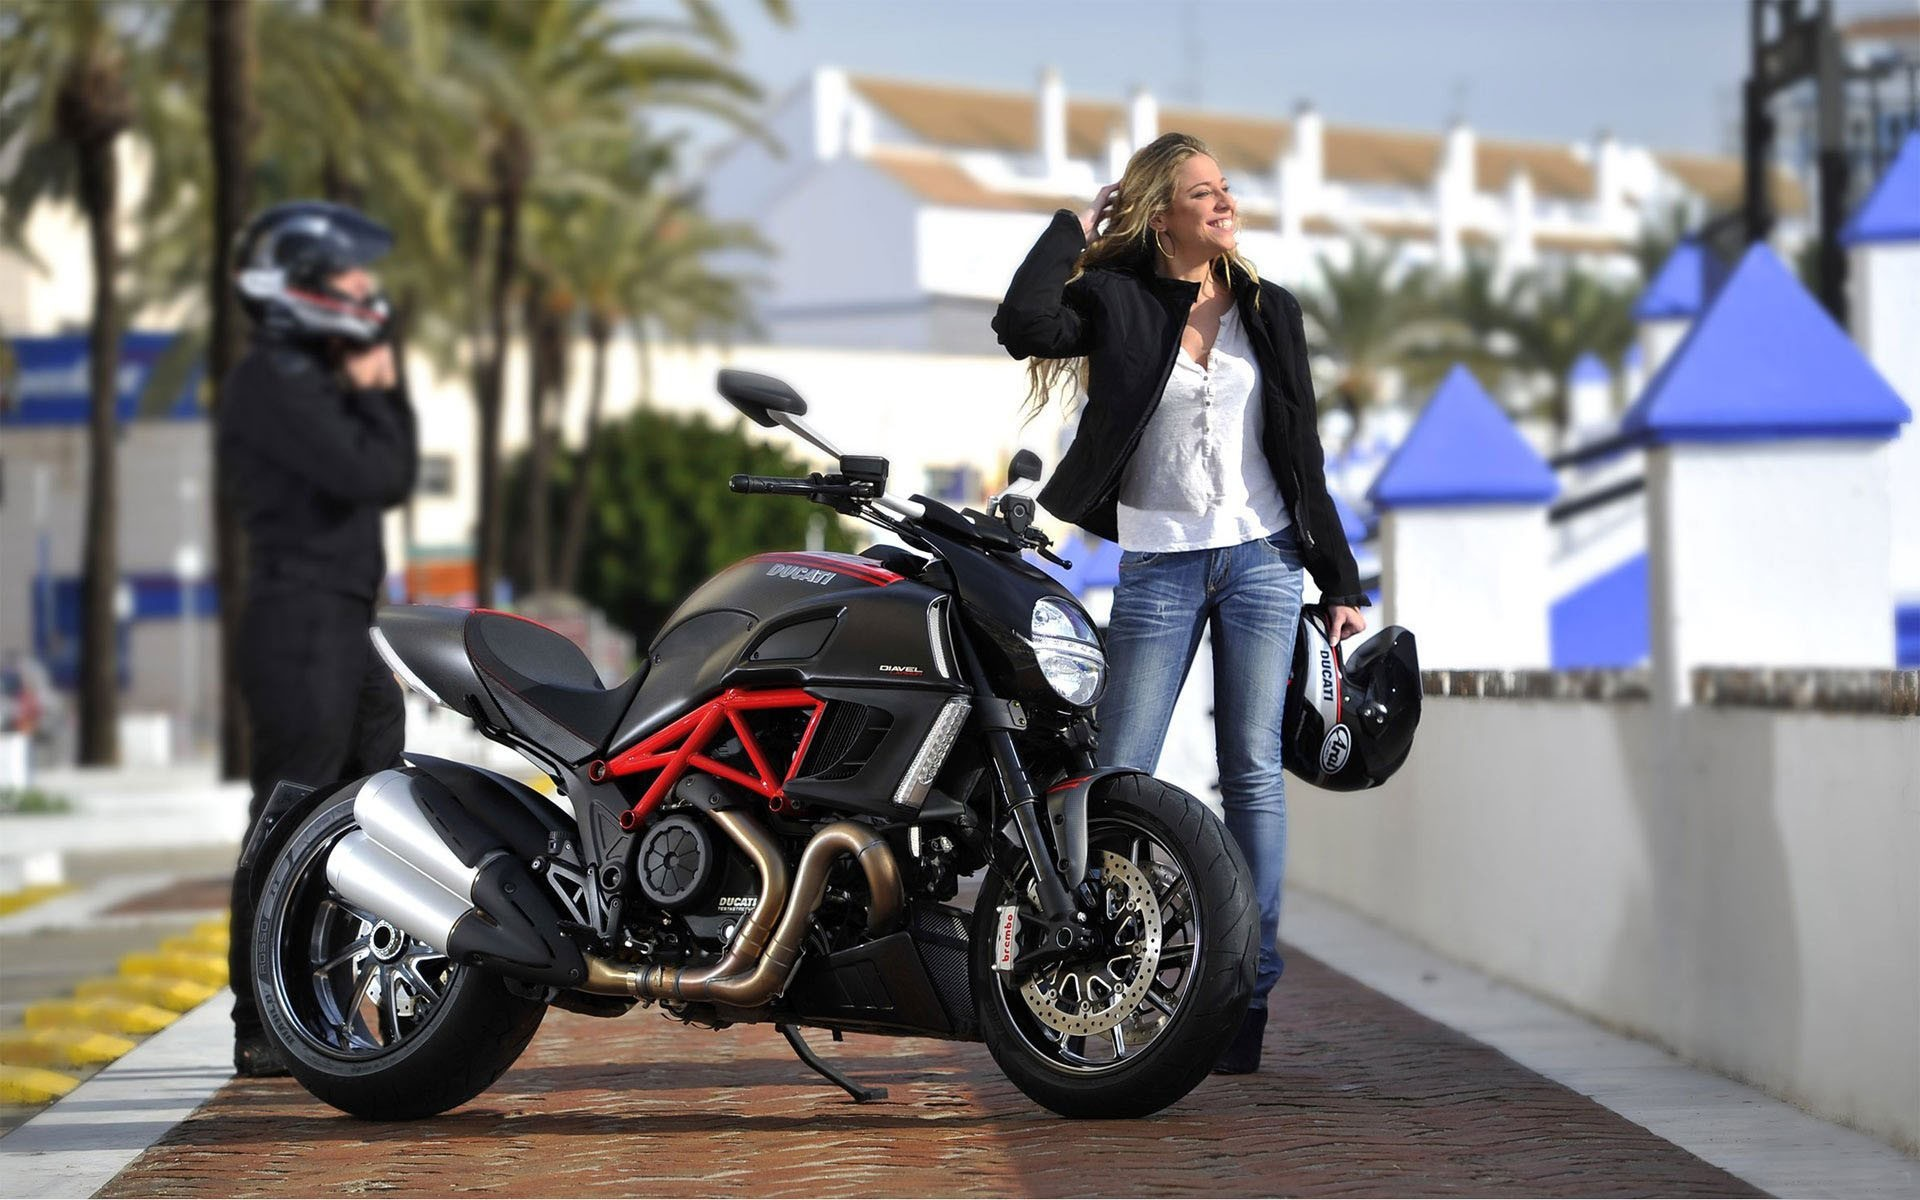 Ducati vehicles motorbikes HD Wallpaper